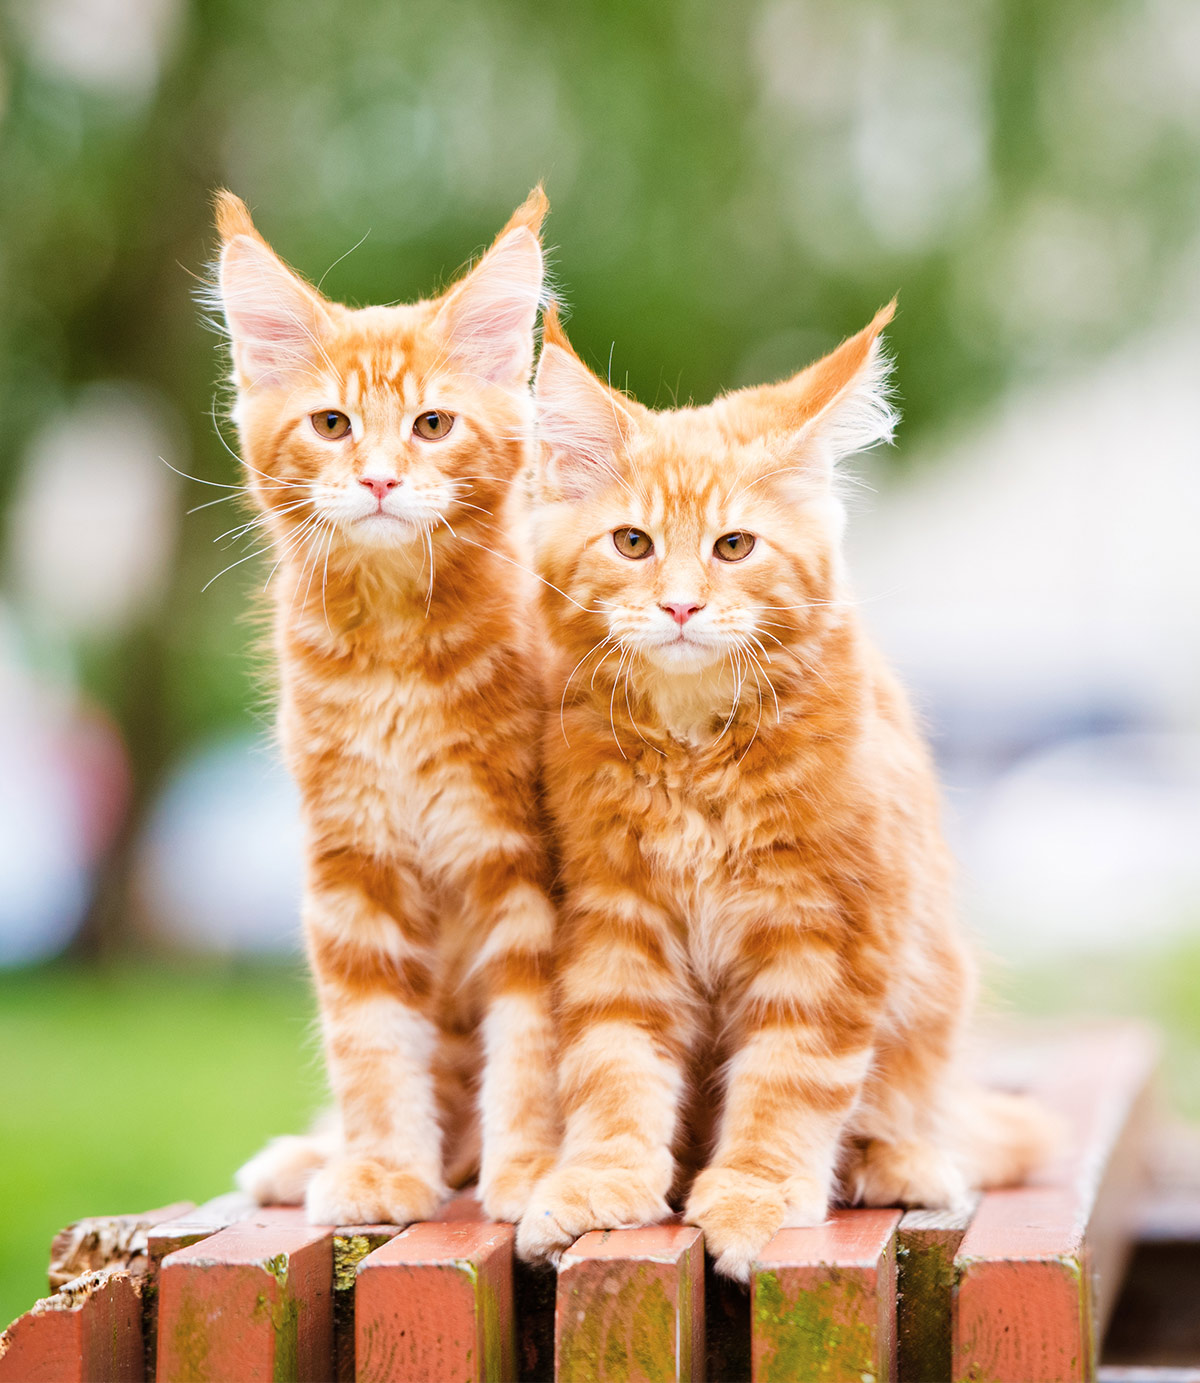 Orange pictures of Maine Coon cats